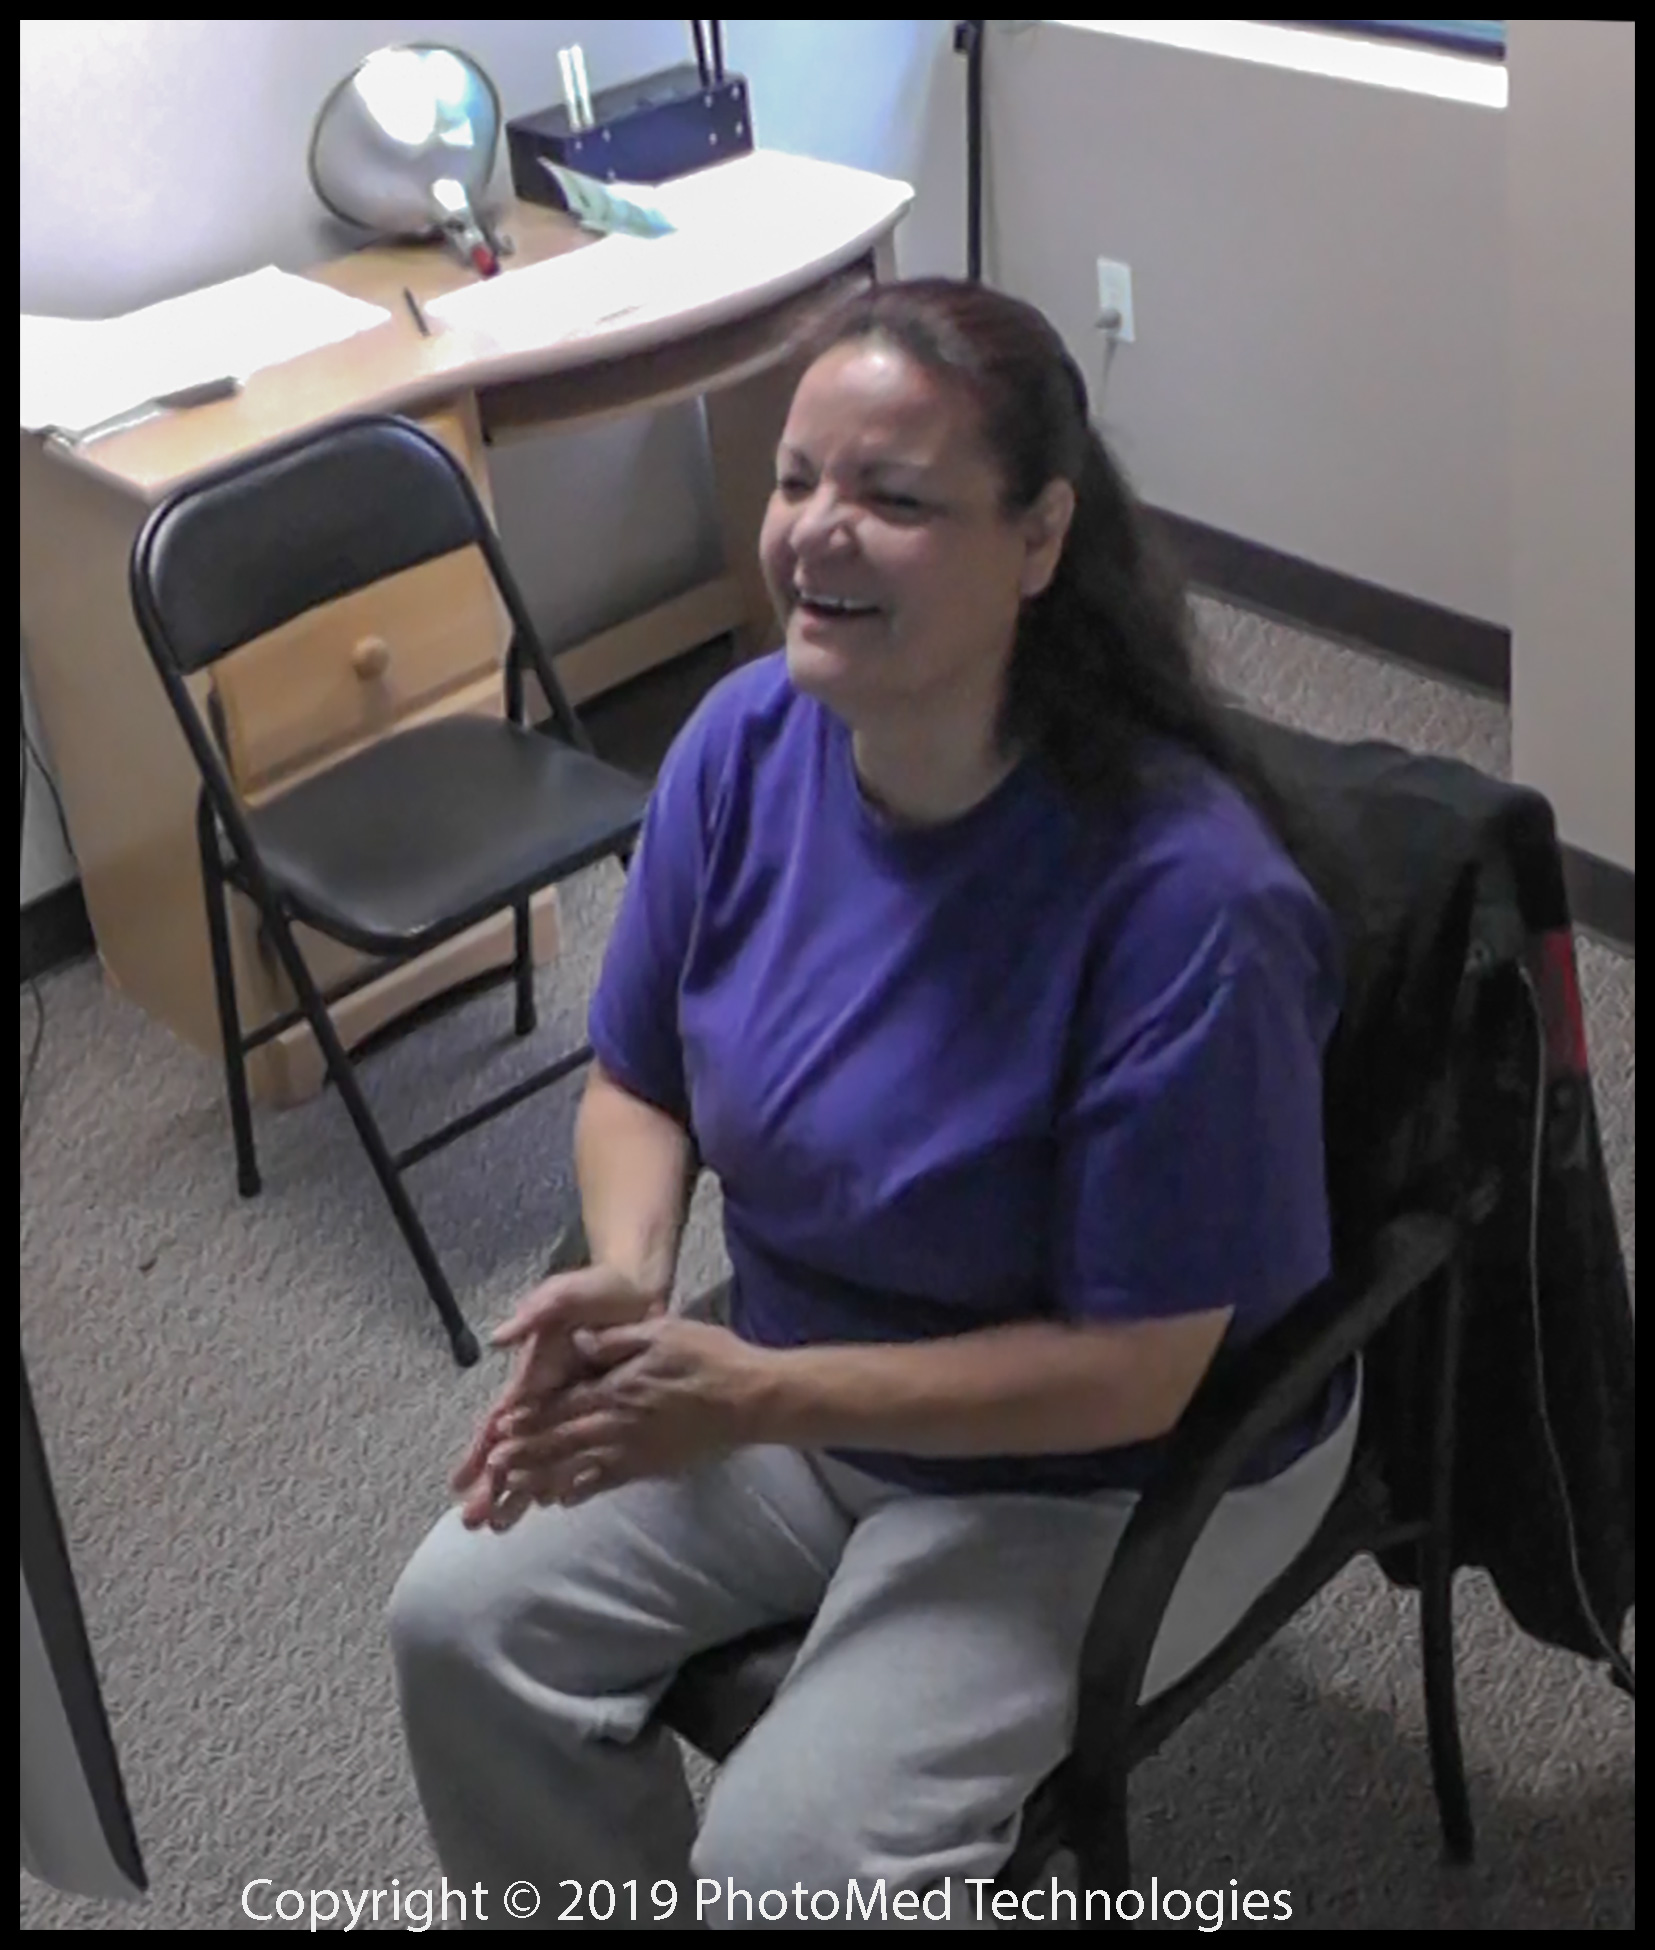 Brenda is surprised to feel her right hand fingers after surgery to her right elbow more than a year prior. No one anticipated this event. The therapy aimed to relieve pain, which was only partially relieved. This image is from a real-time video of the visit.